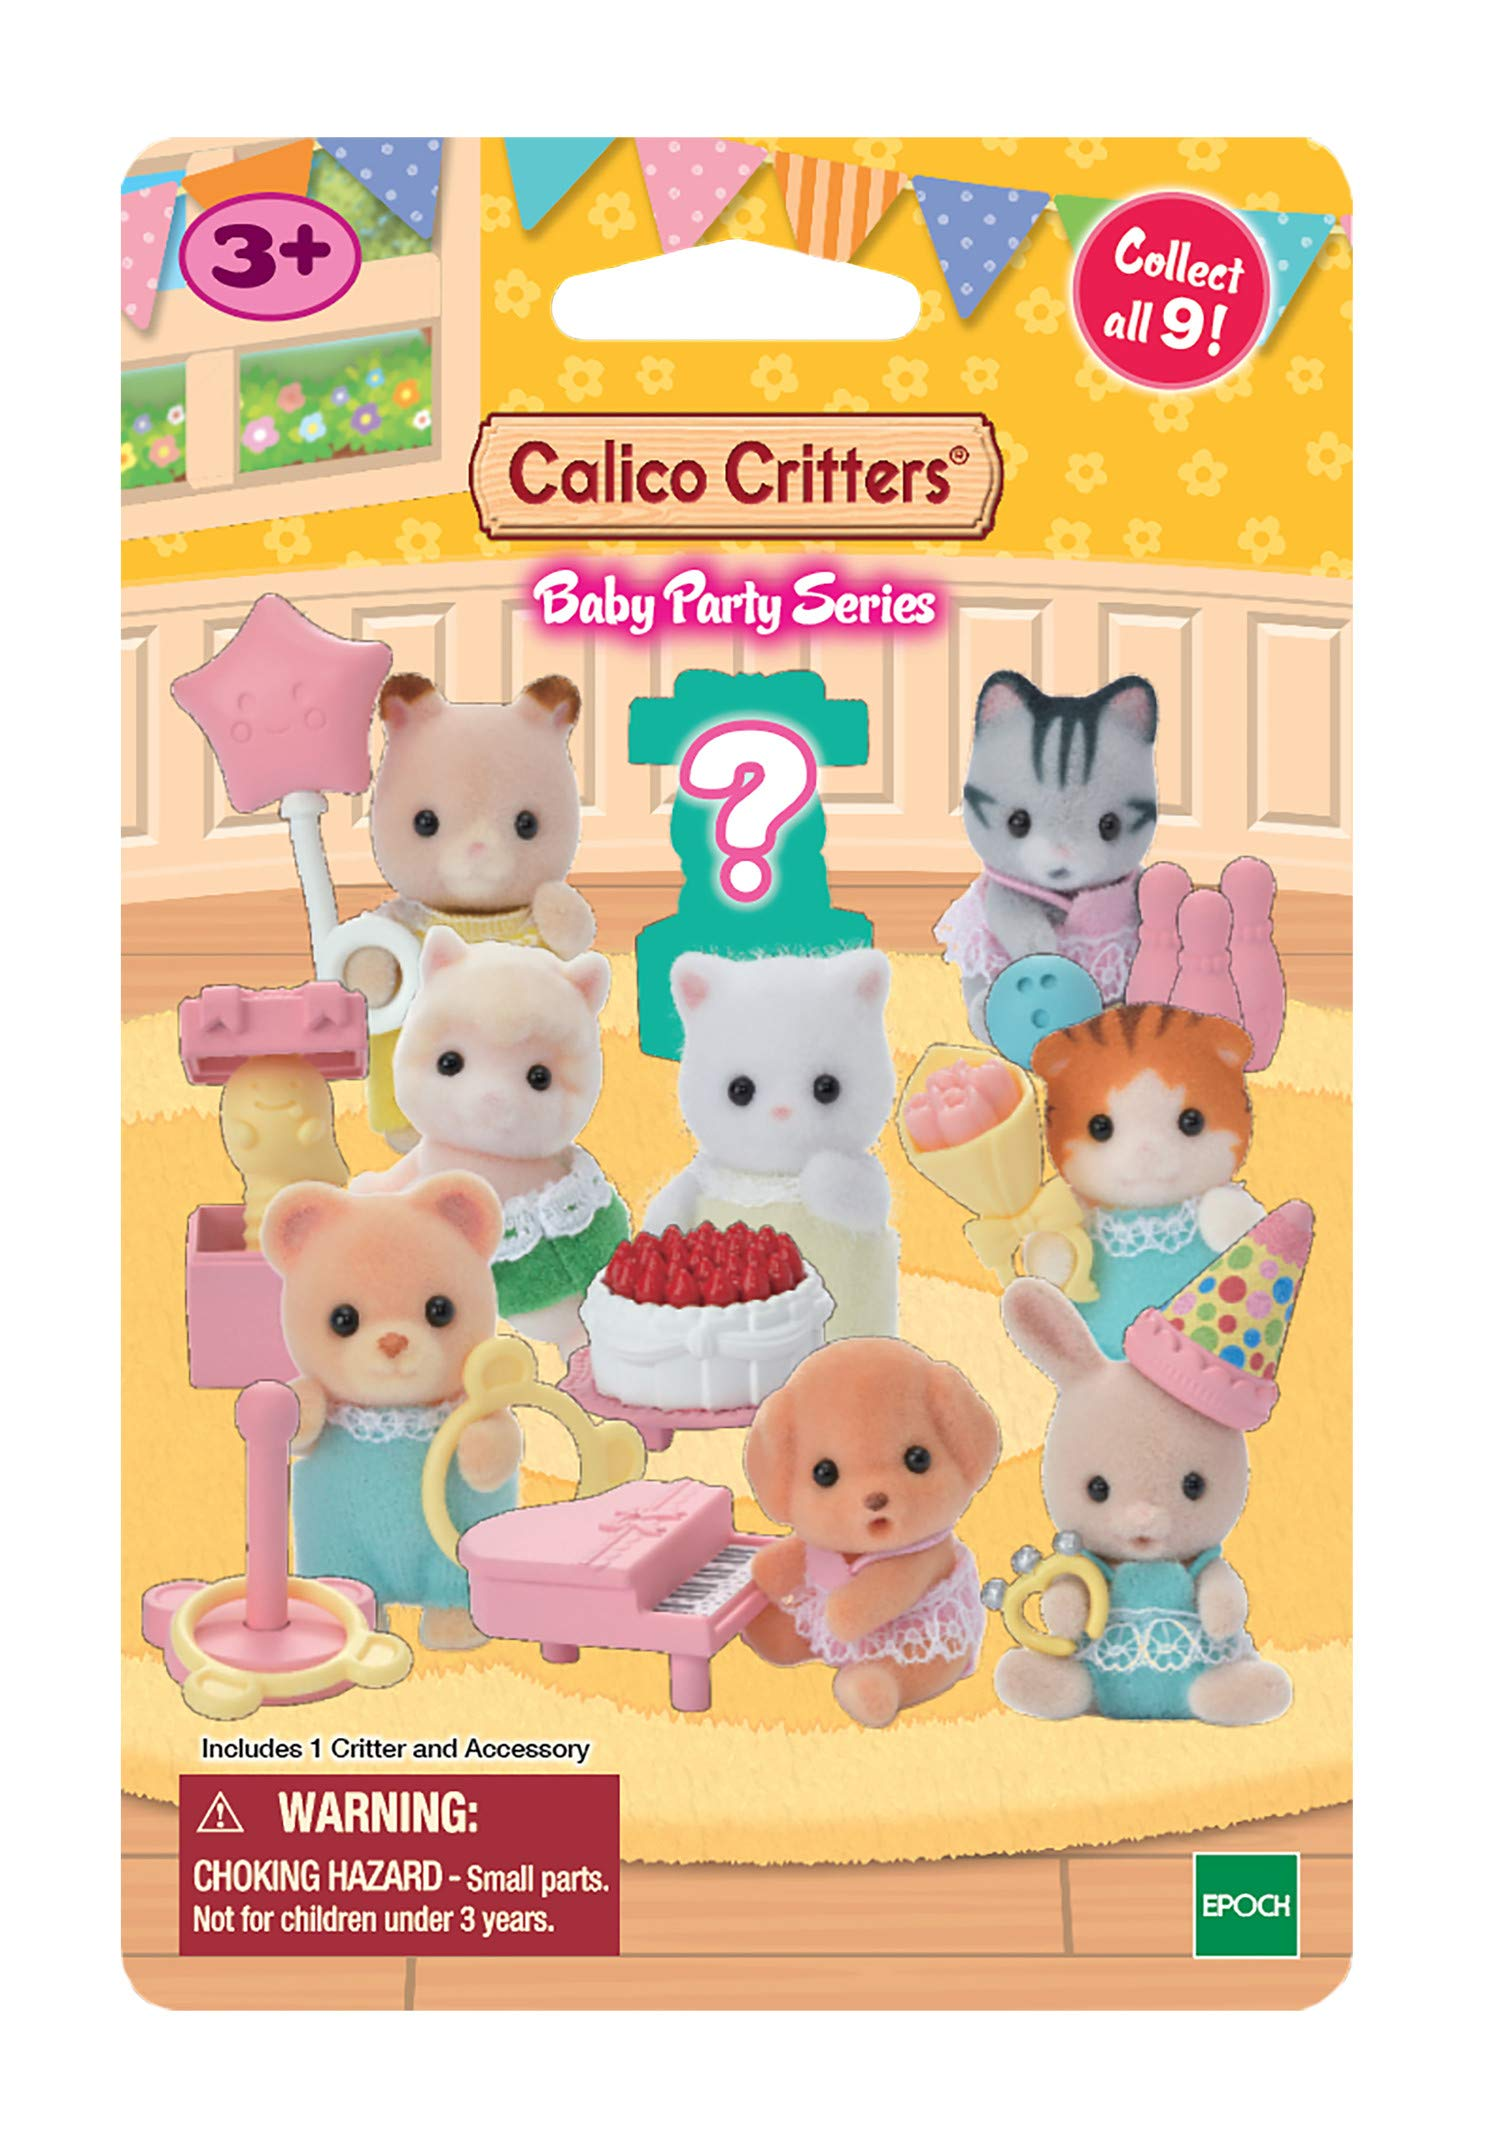 Calico Critters Baby Collectibles - Baby Party Series (Bundle of 3), Multi (CC1846)